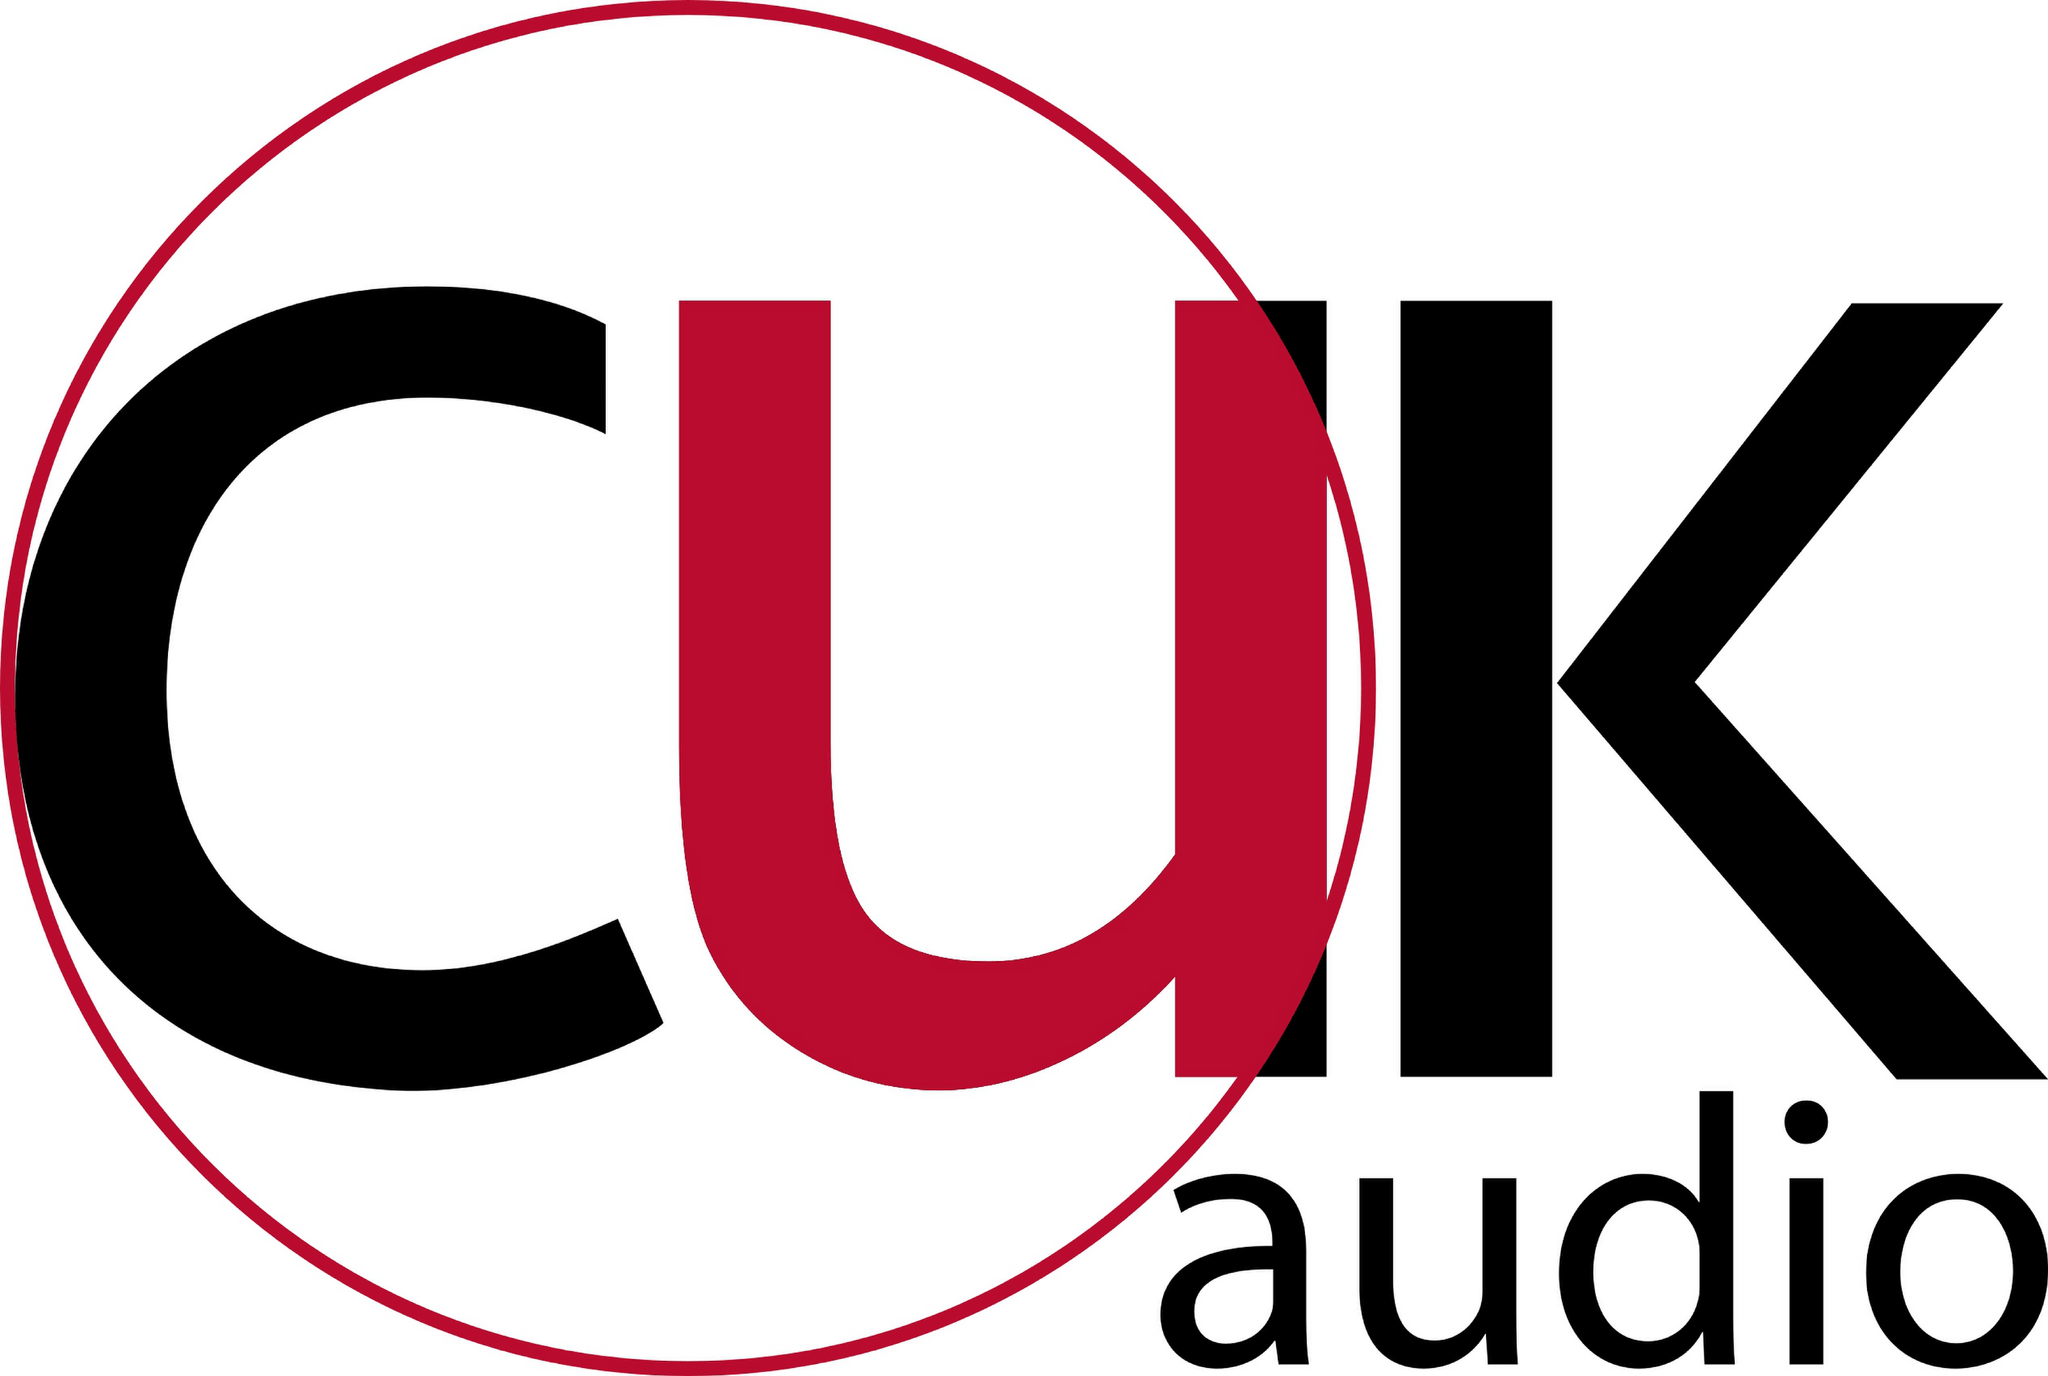 CUK Audio